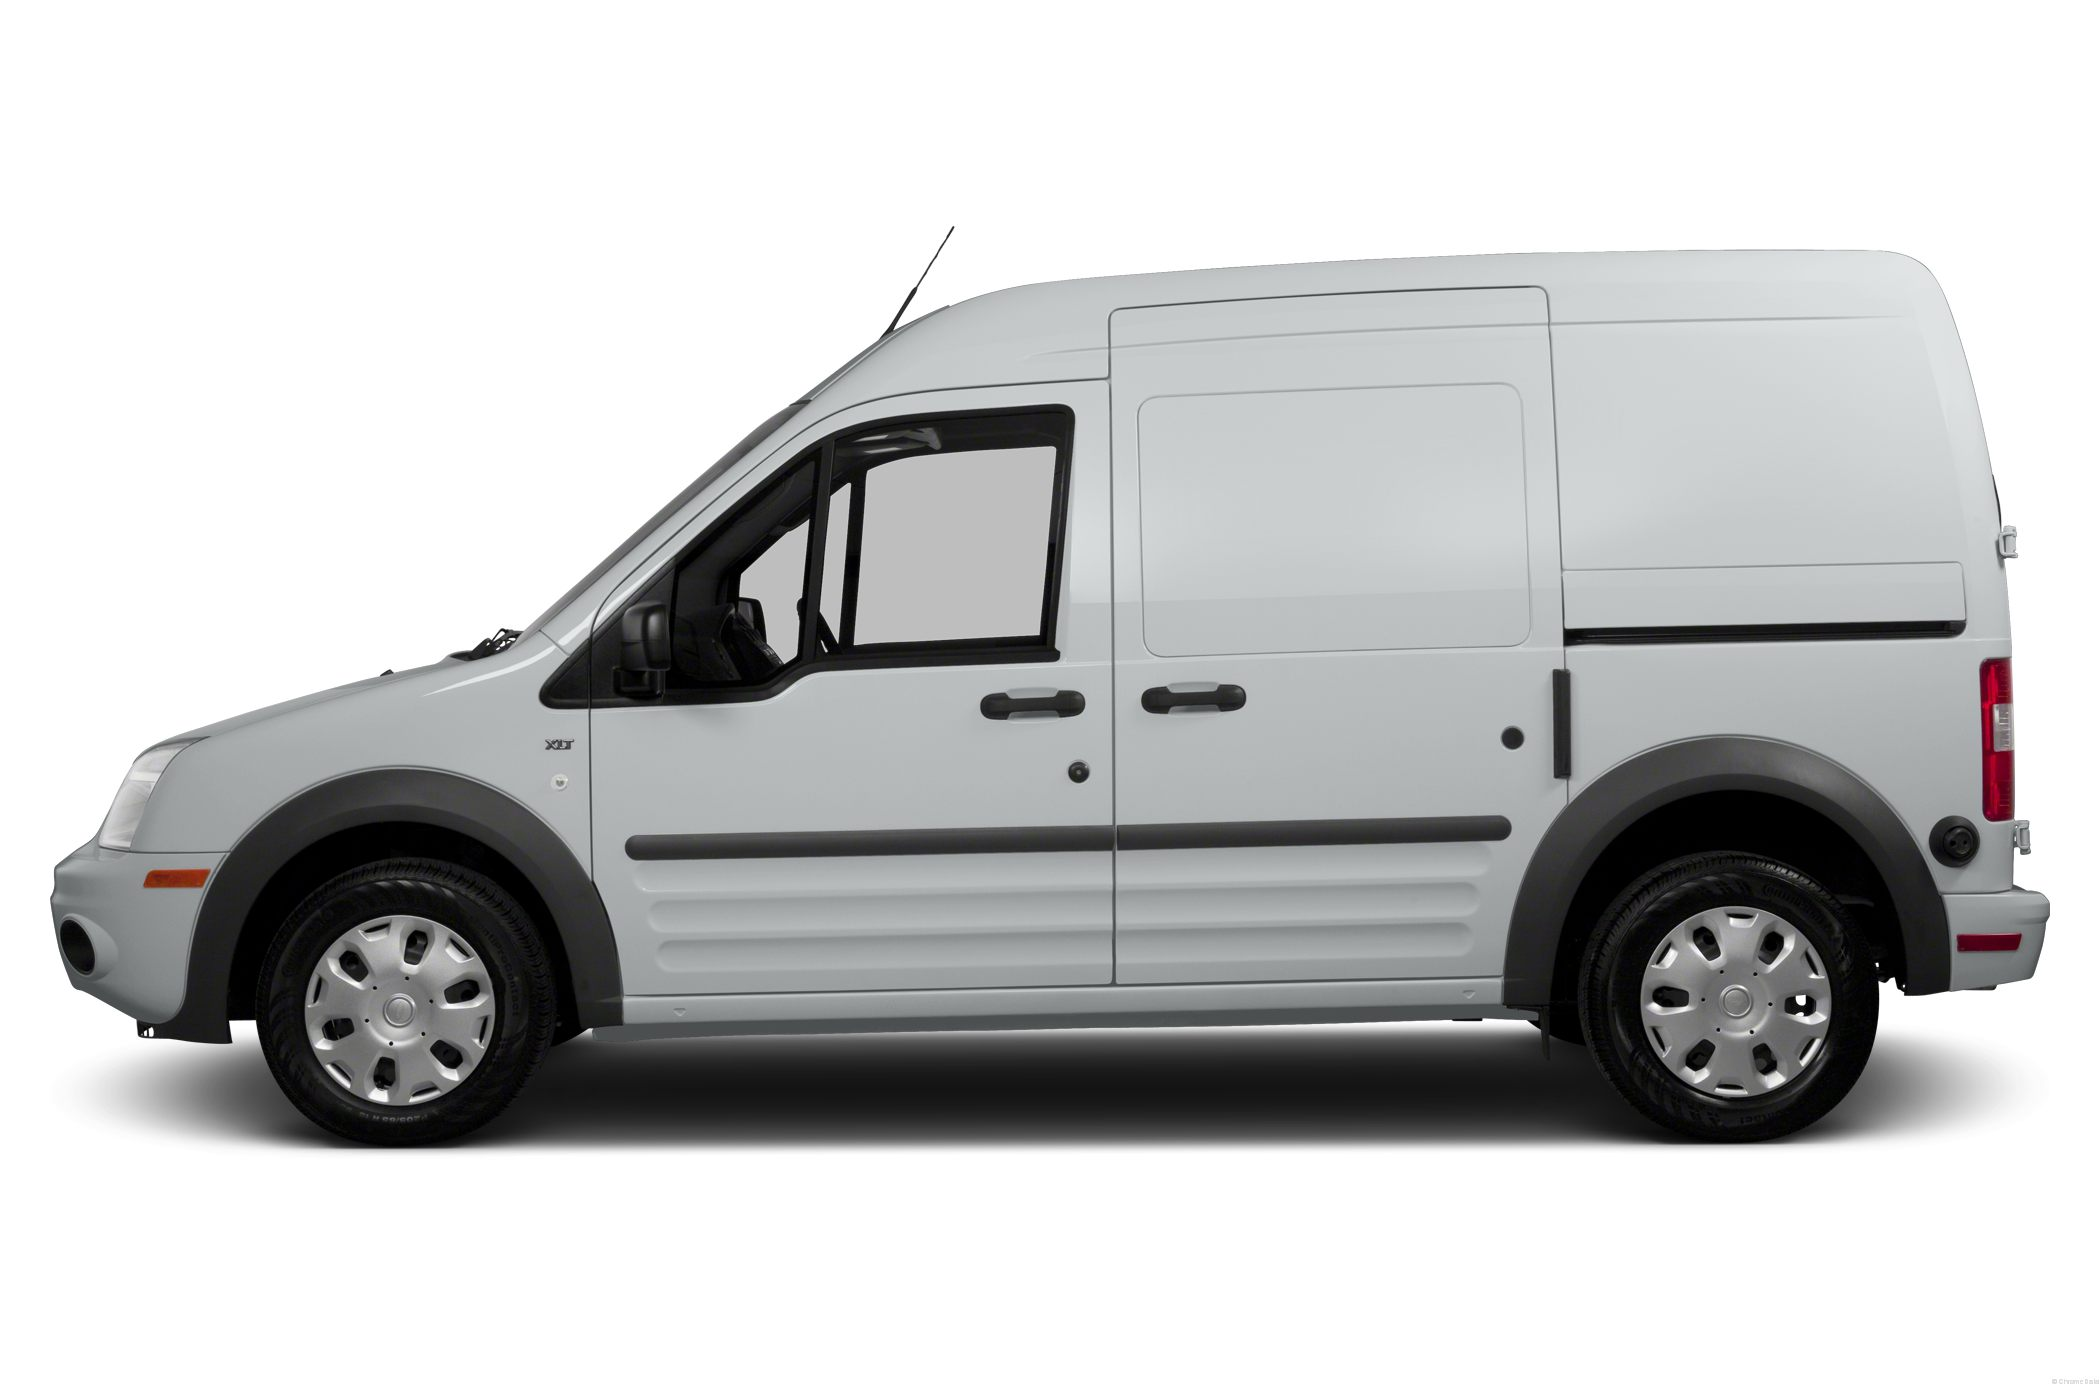 Ford Transit Connect >> 2013 FORD TRANSIT CONNECT - Image #17